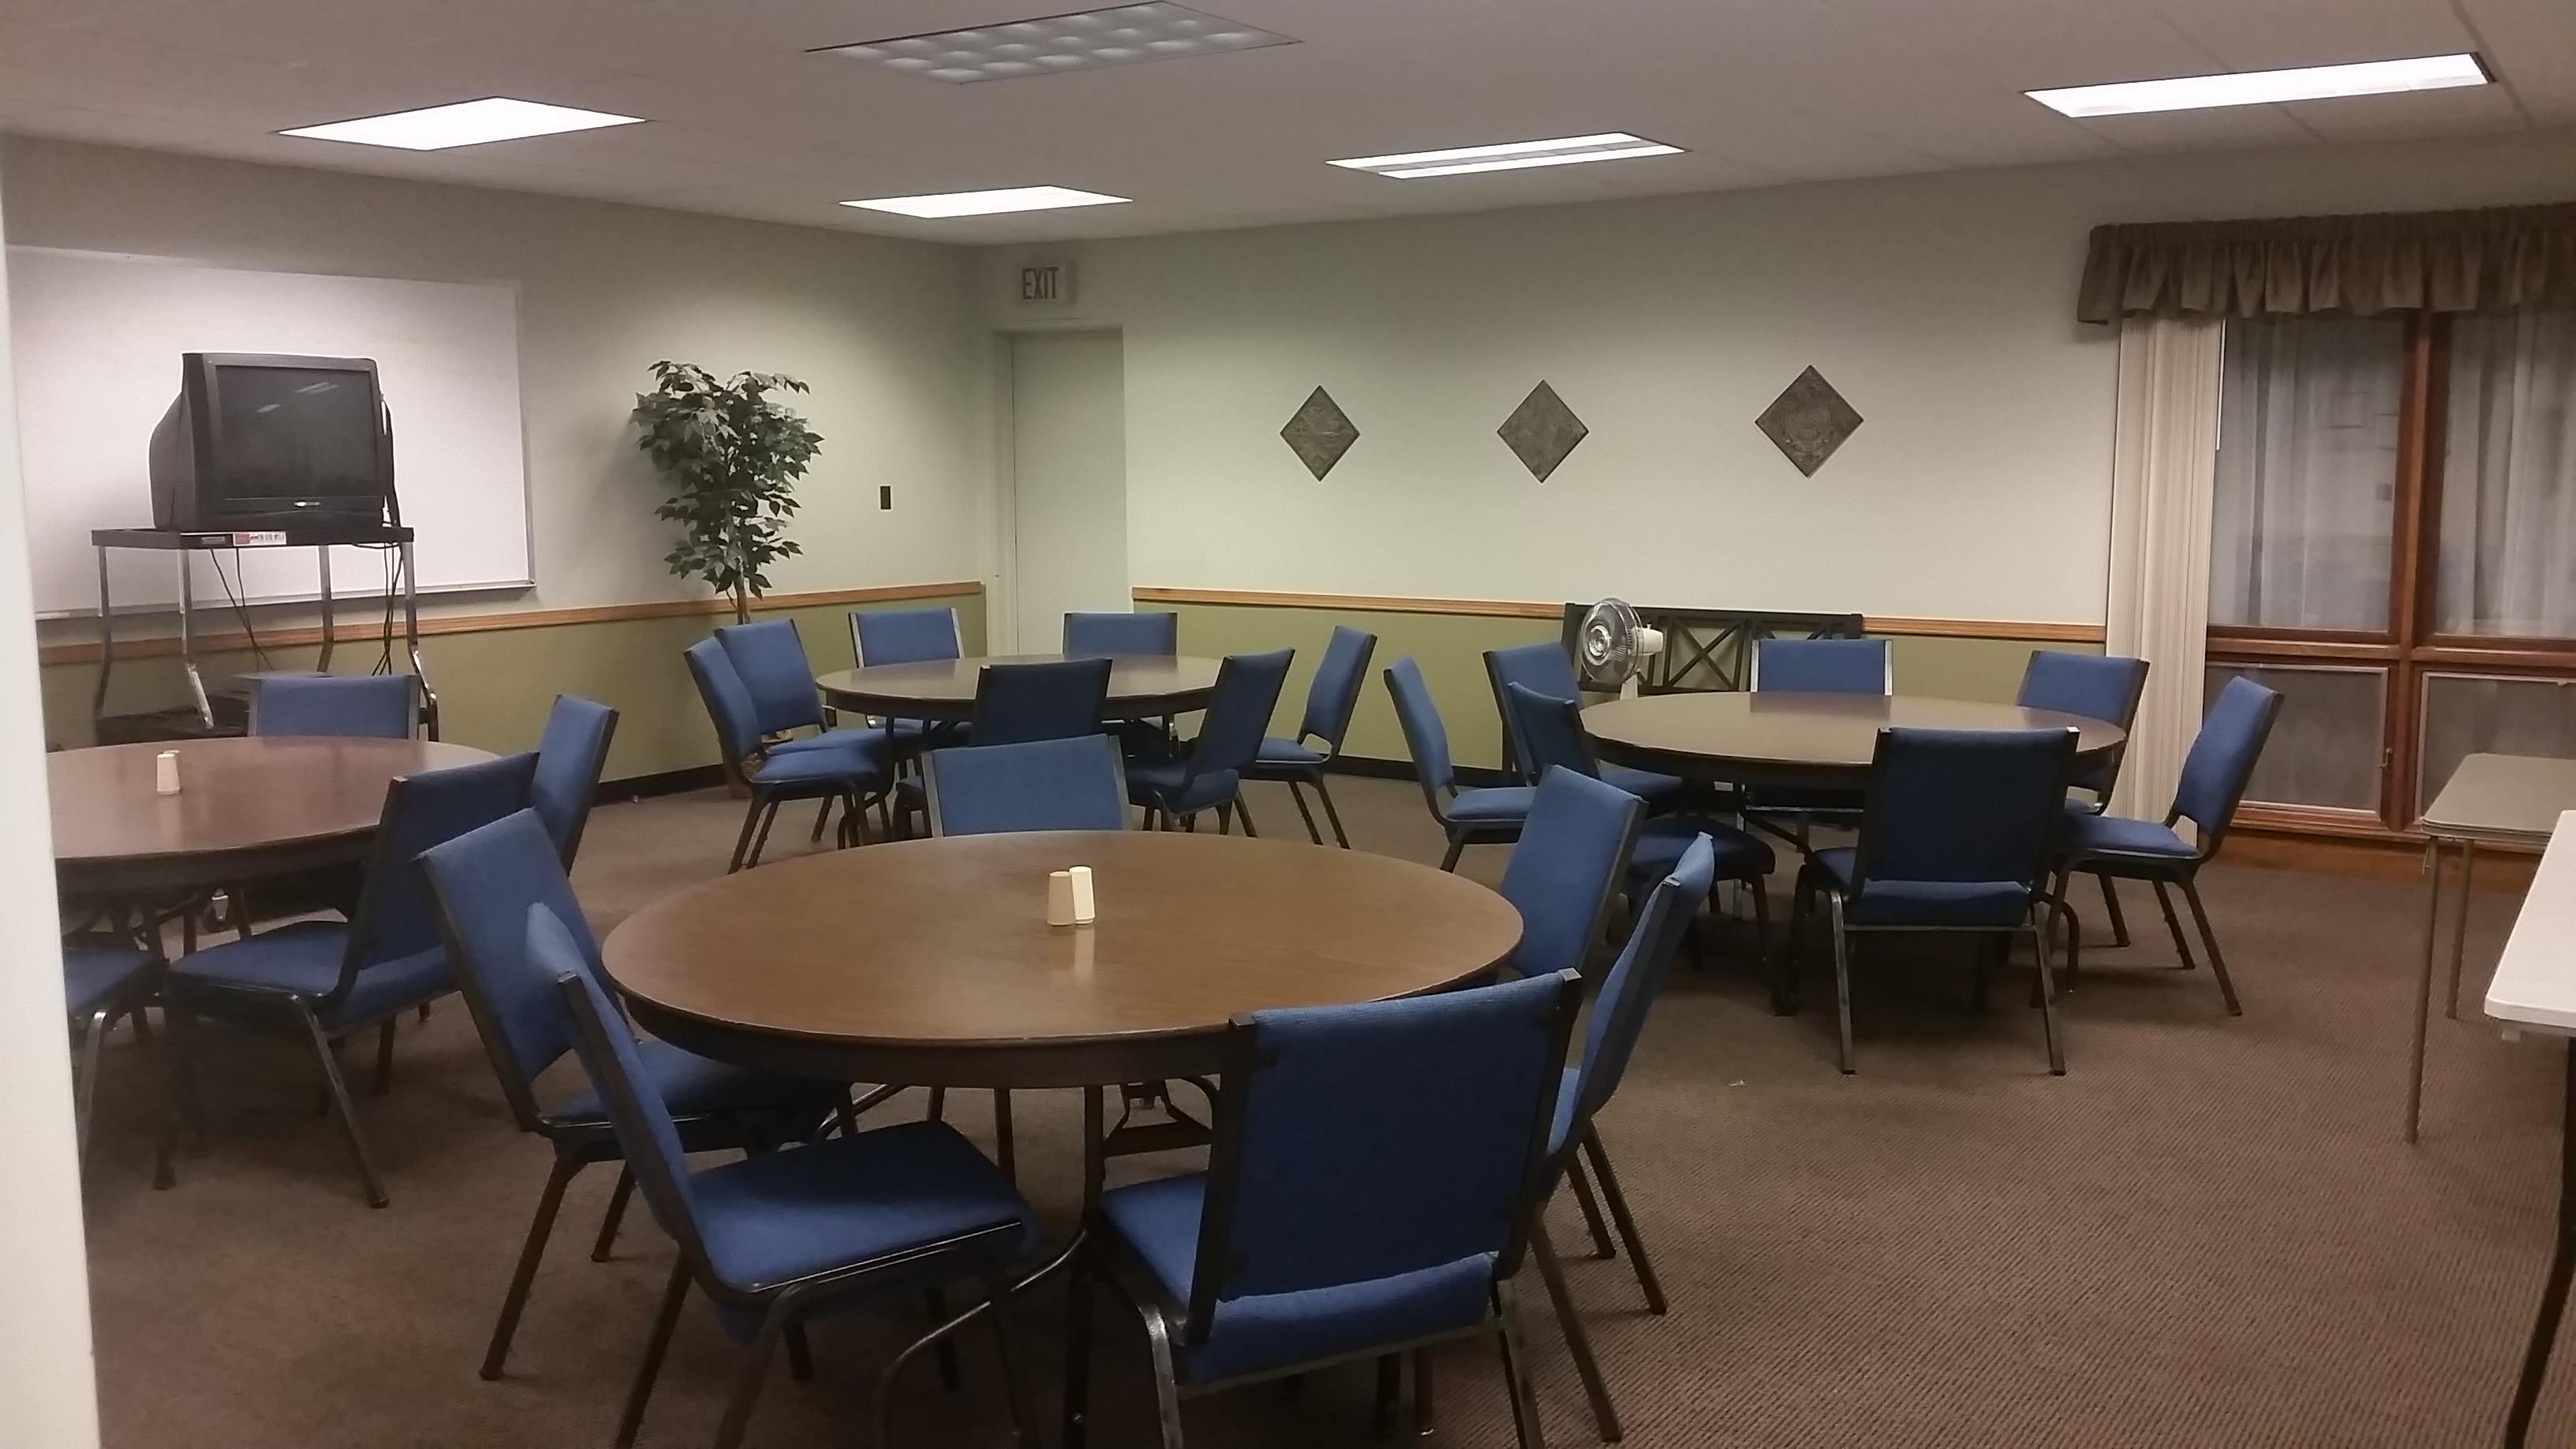 Meetings and Small Groups Calvin Room is Perfect!